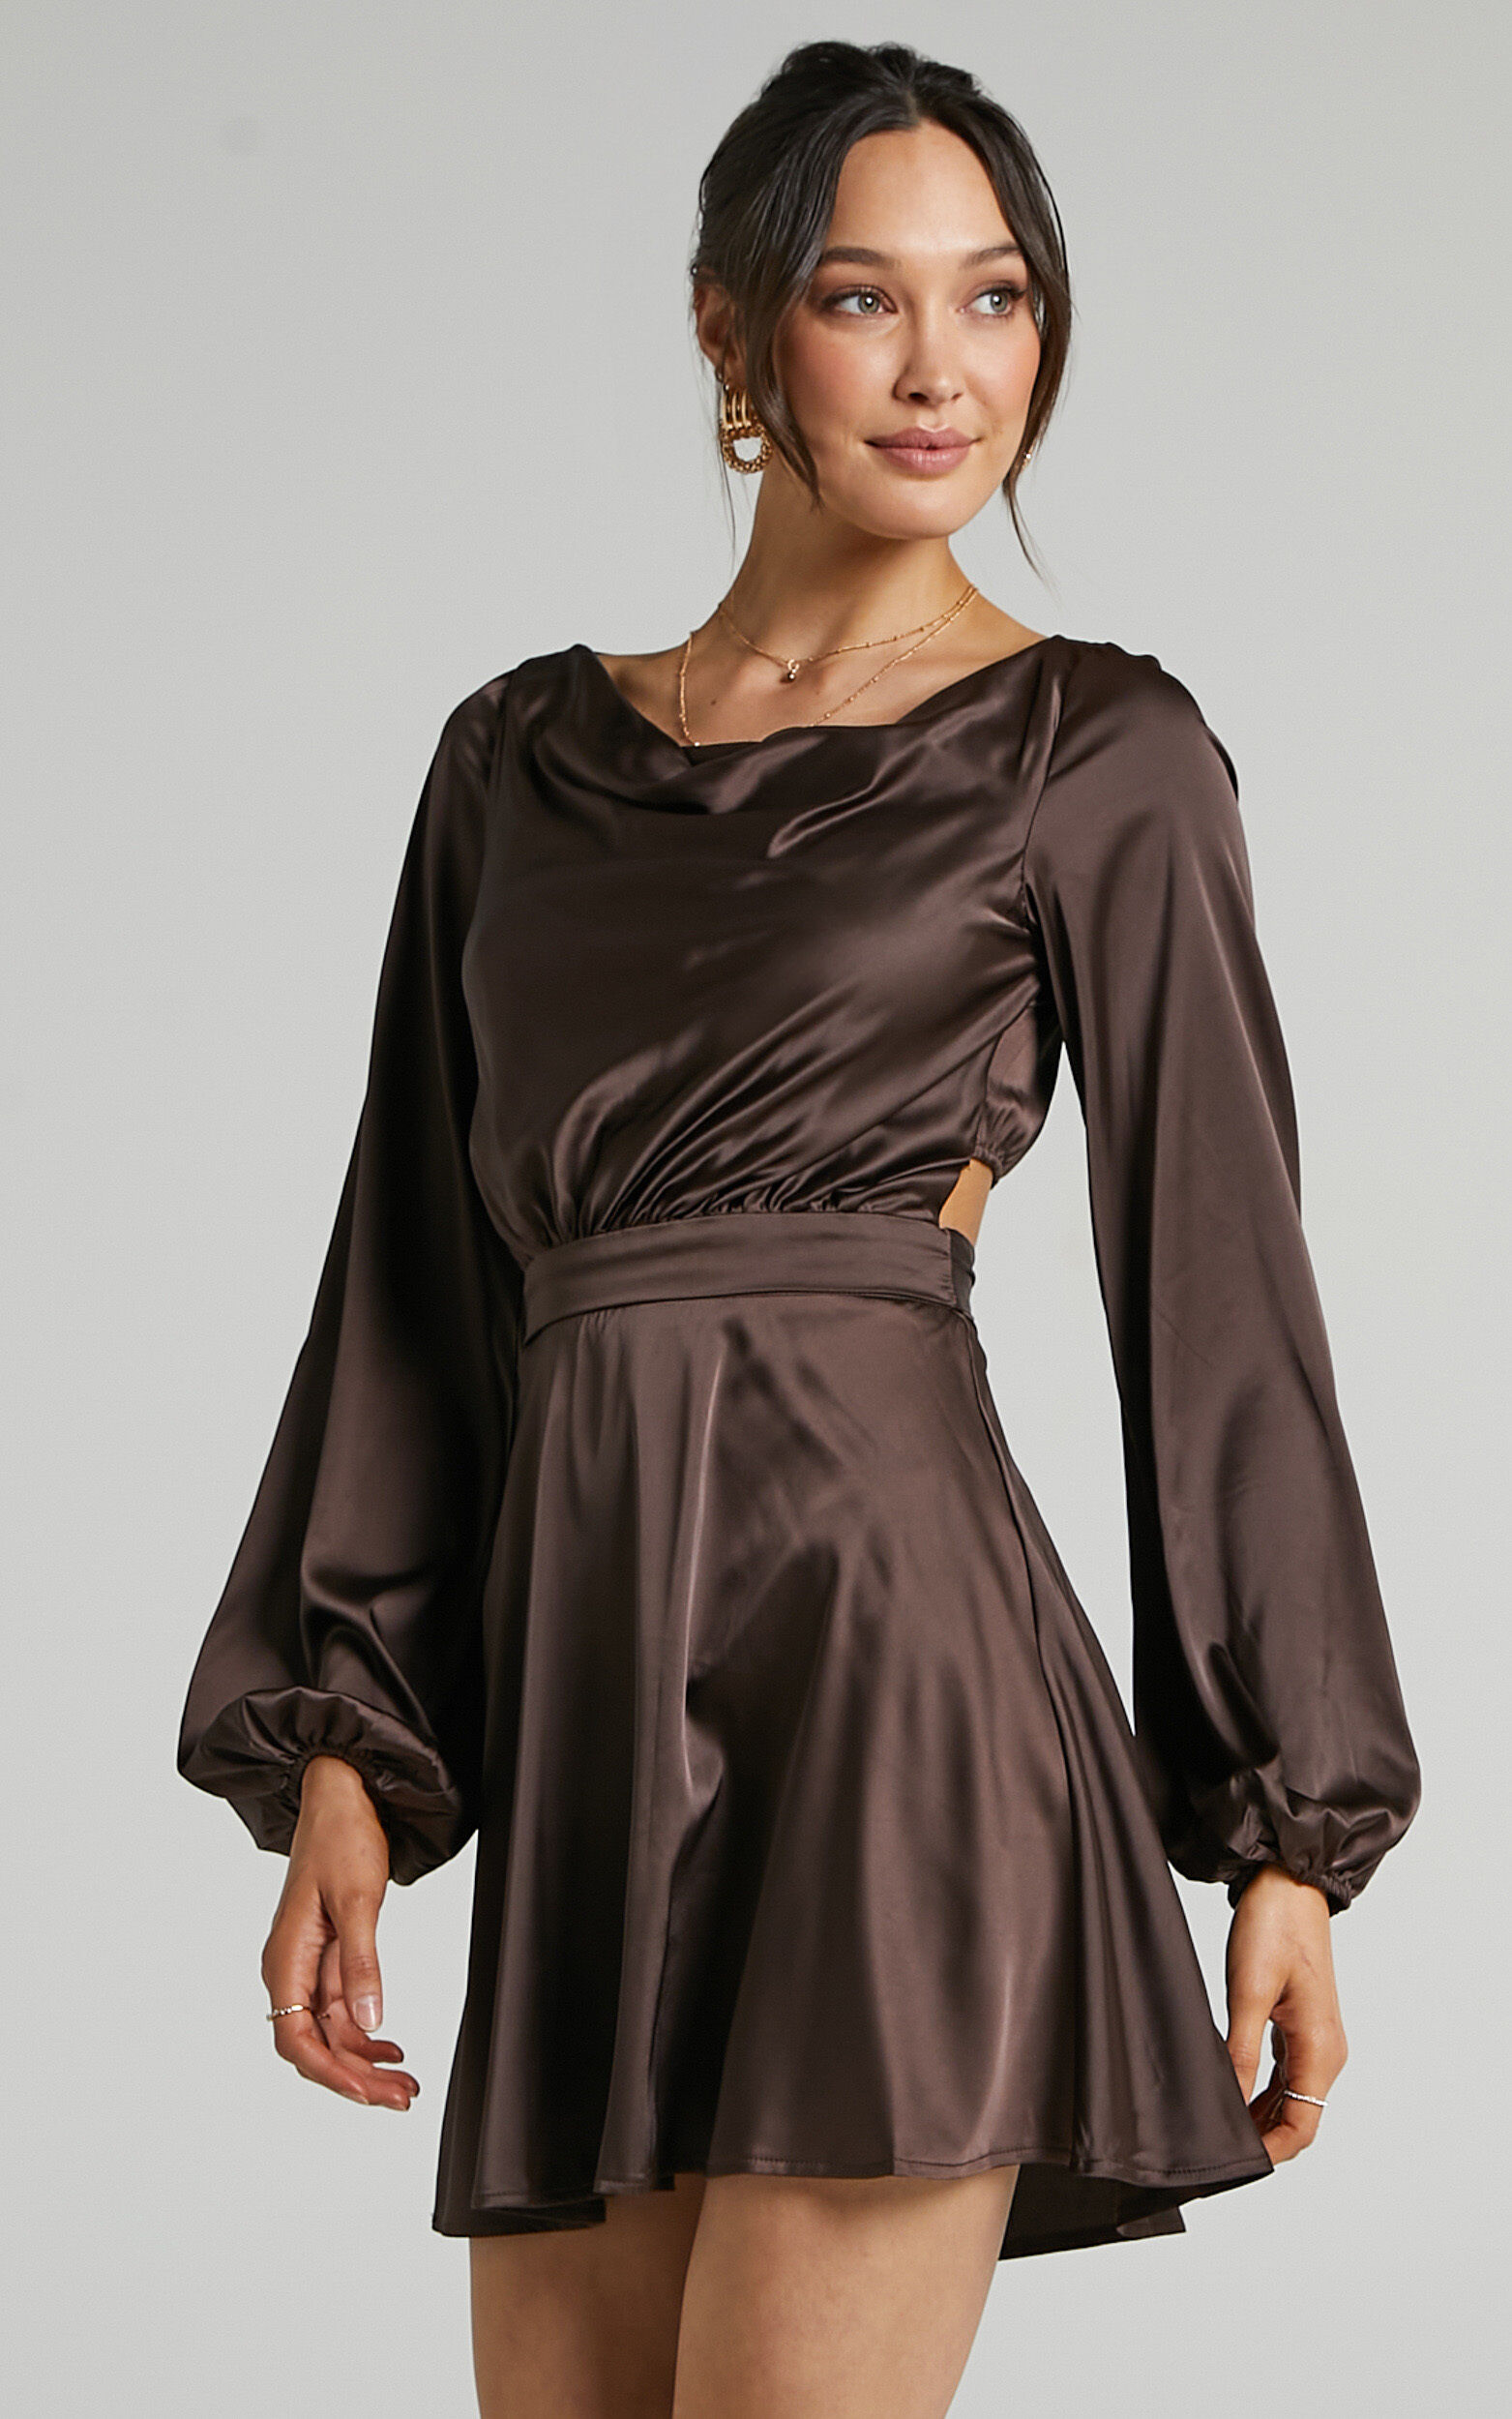 Lupe Cowl Neck Satin Mini Dress in Chocolate Satin - 06, BRN1, super-hi-res image number null